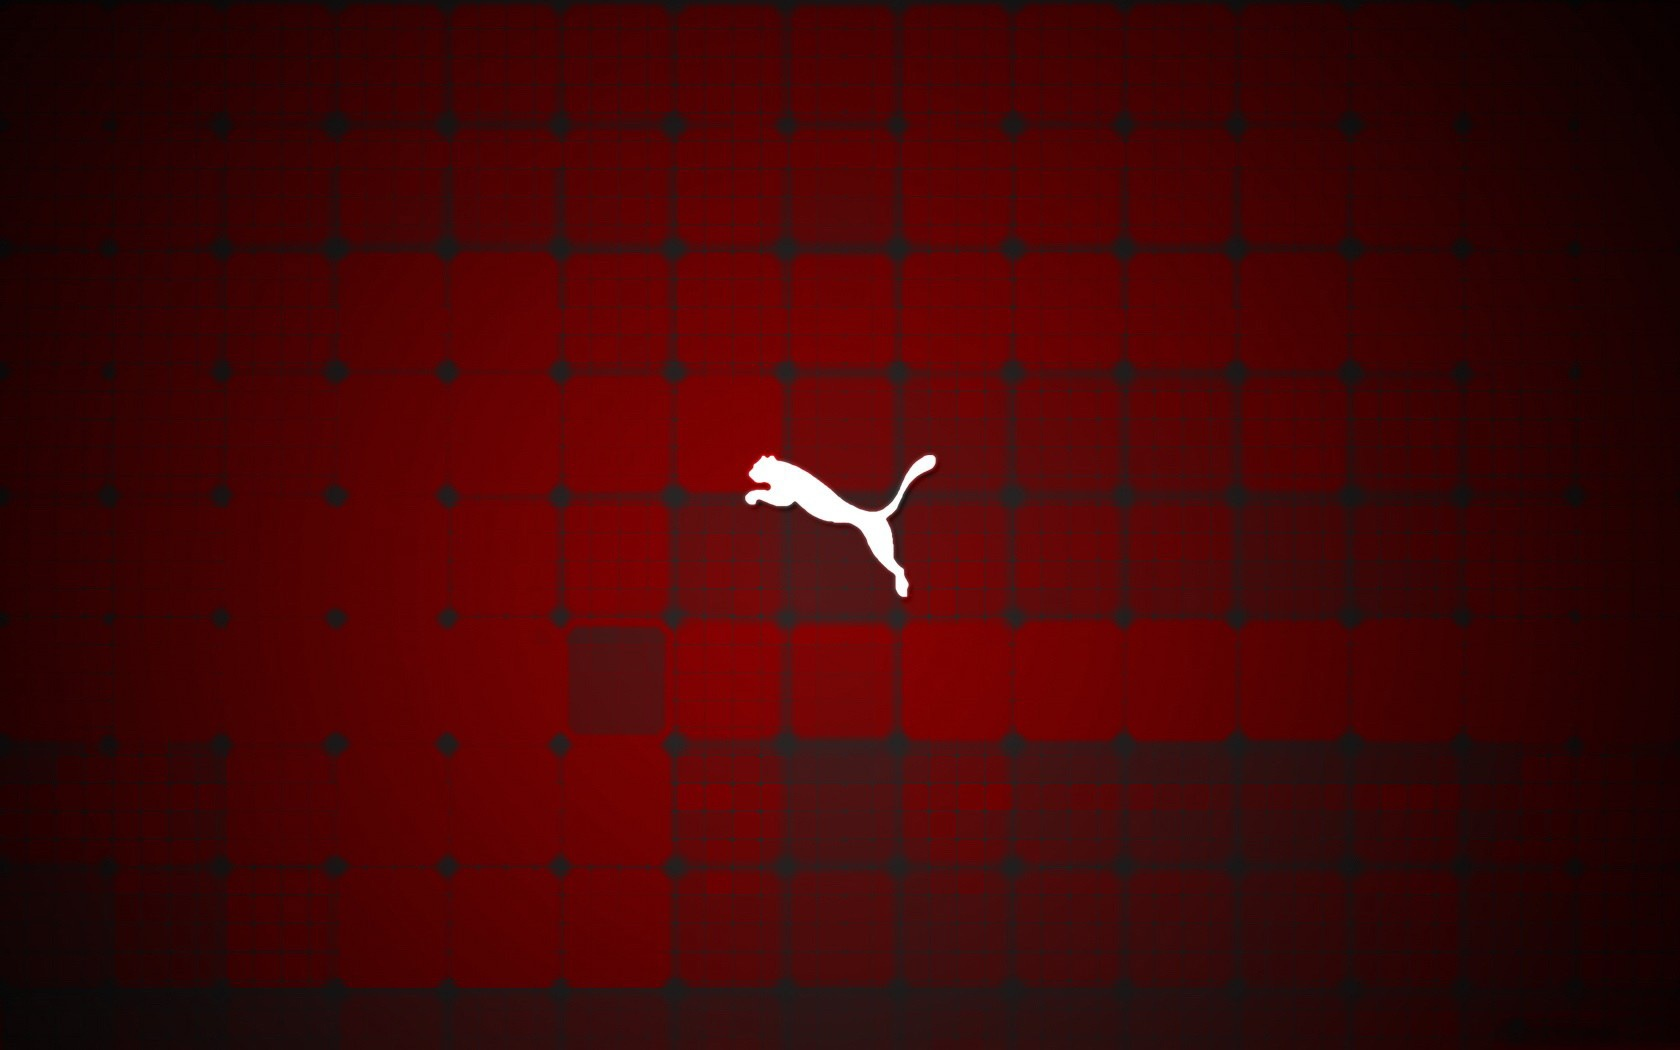 White Puma Logo Red Background HD Wallpaper Image For Your PC ...